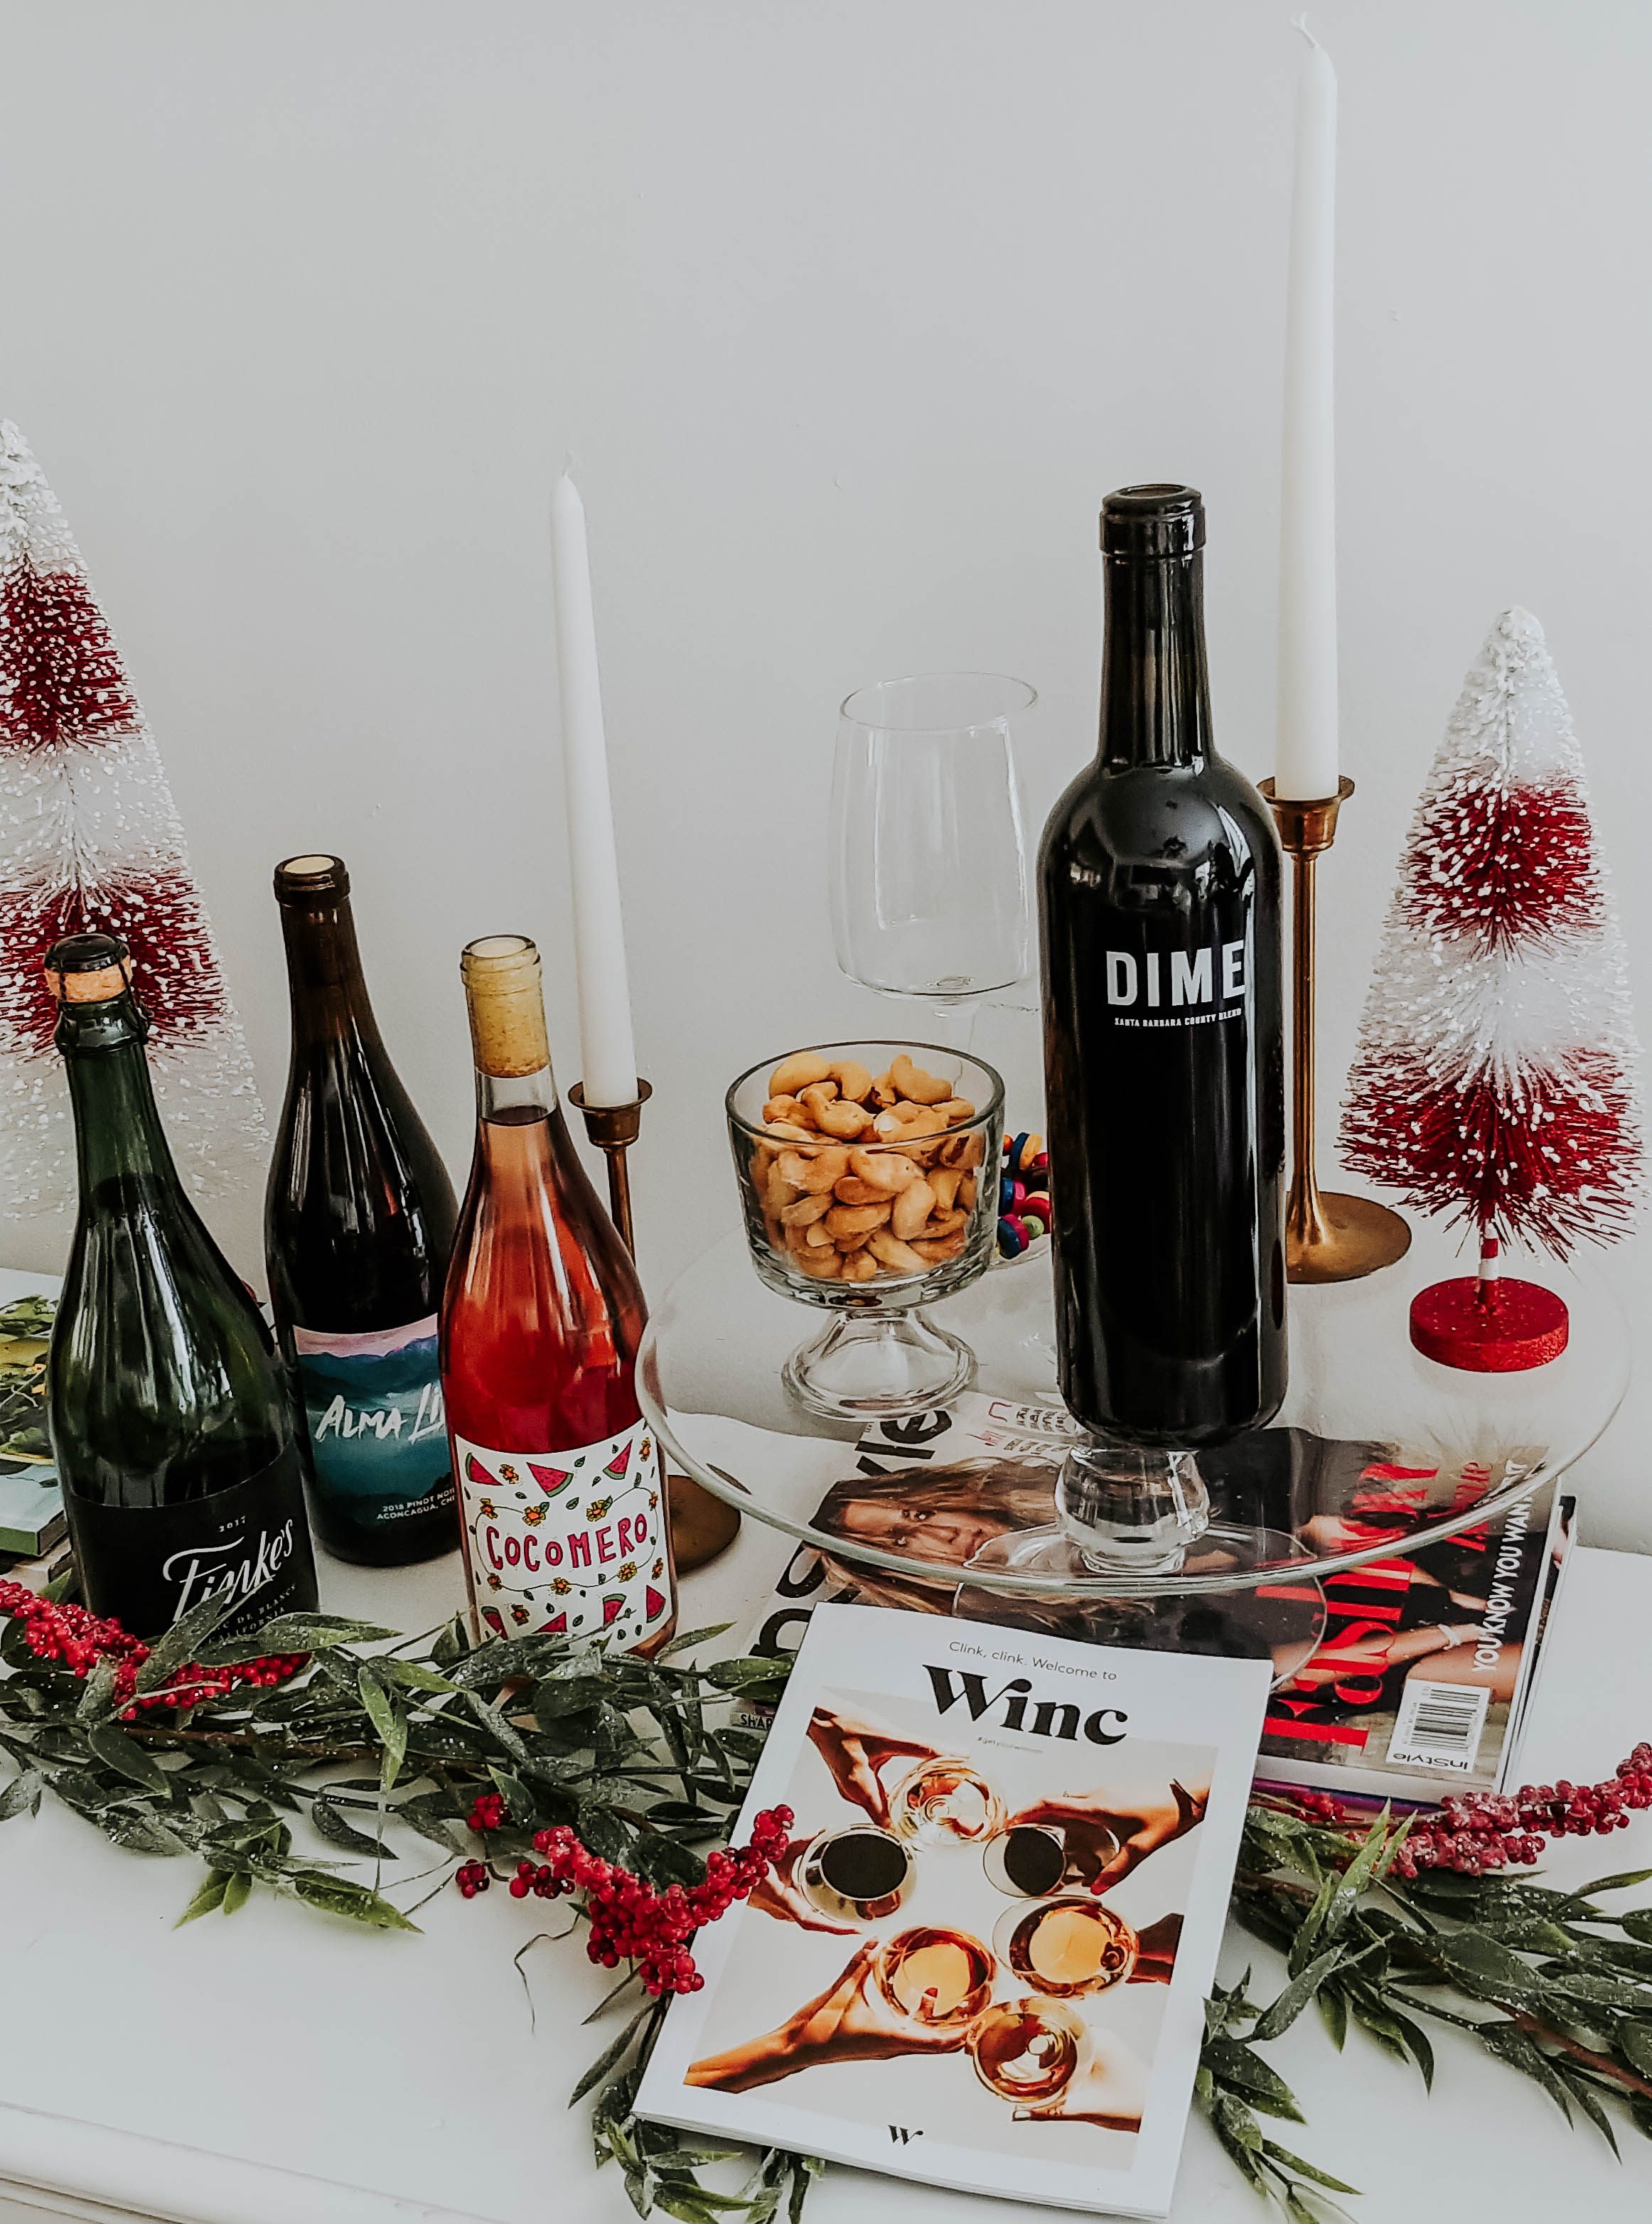 Image of different wines from winc.com.